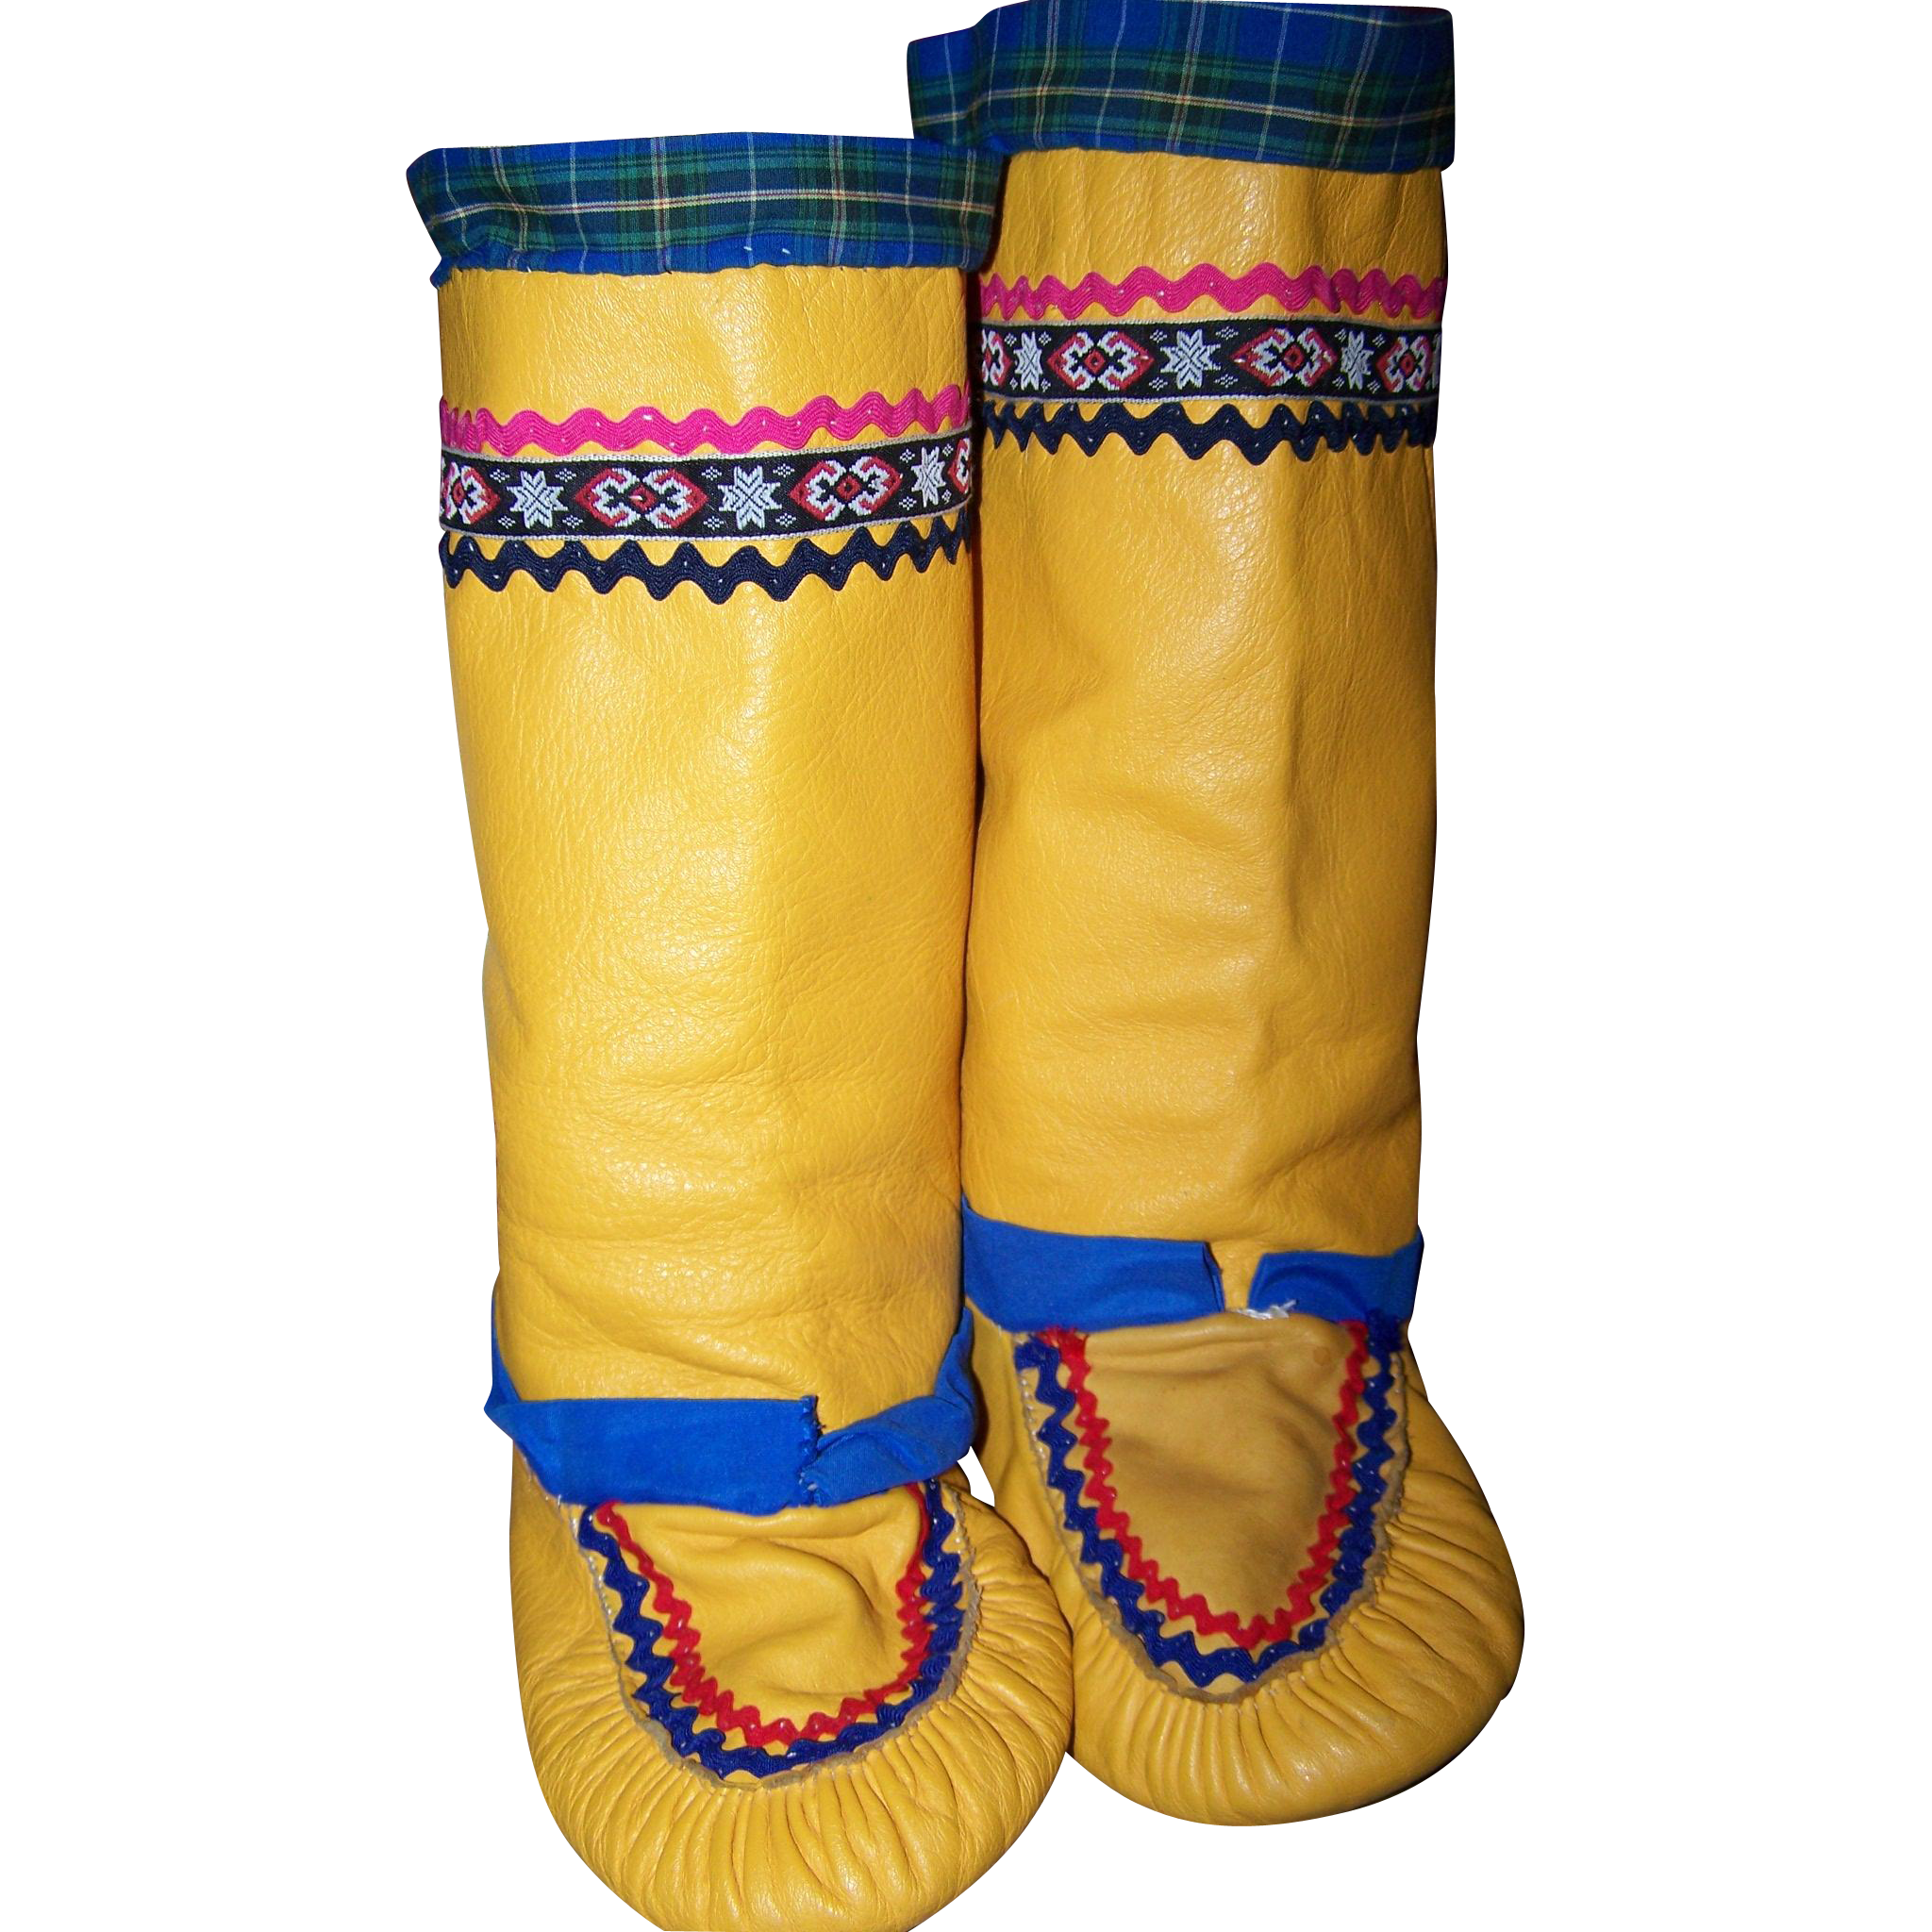 Authentic Native Canadian  Vintage Tall Mukluk  Boots Hand Made Leather Hide